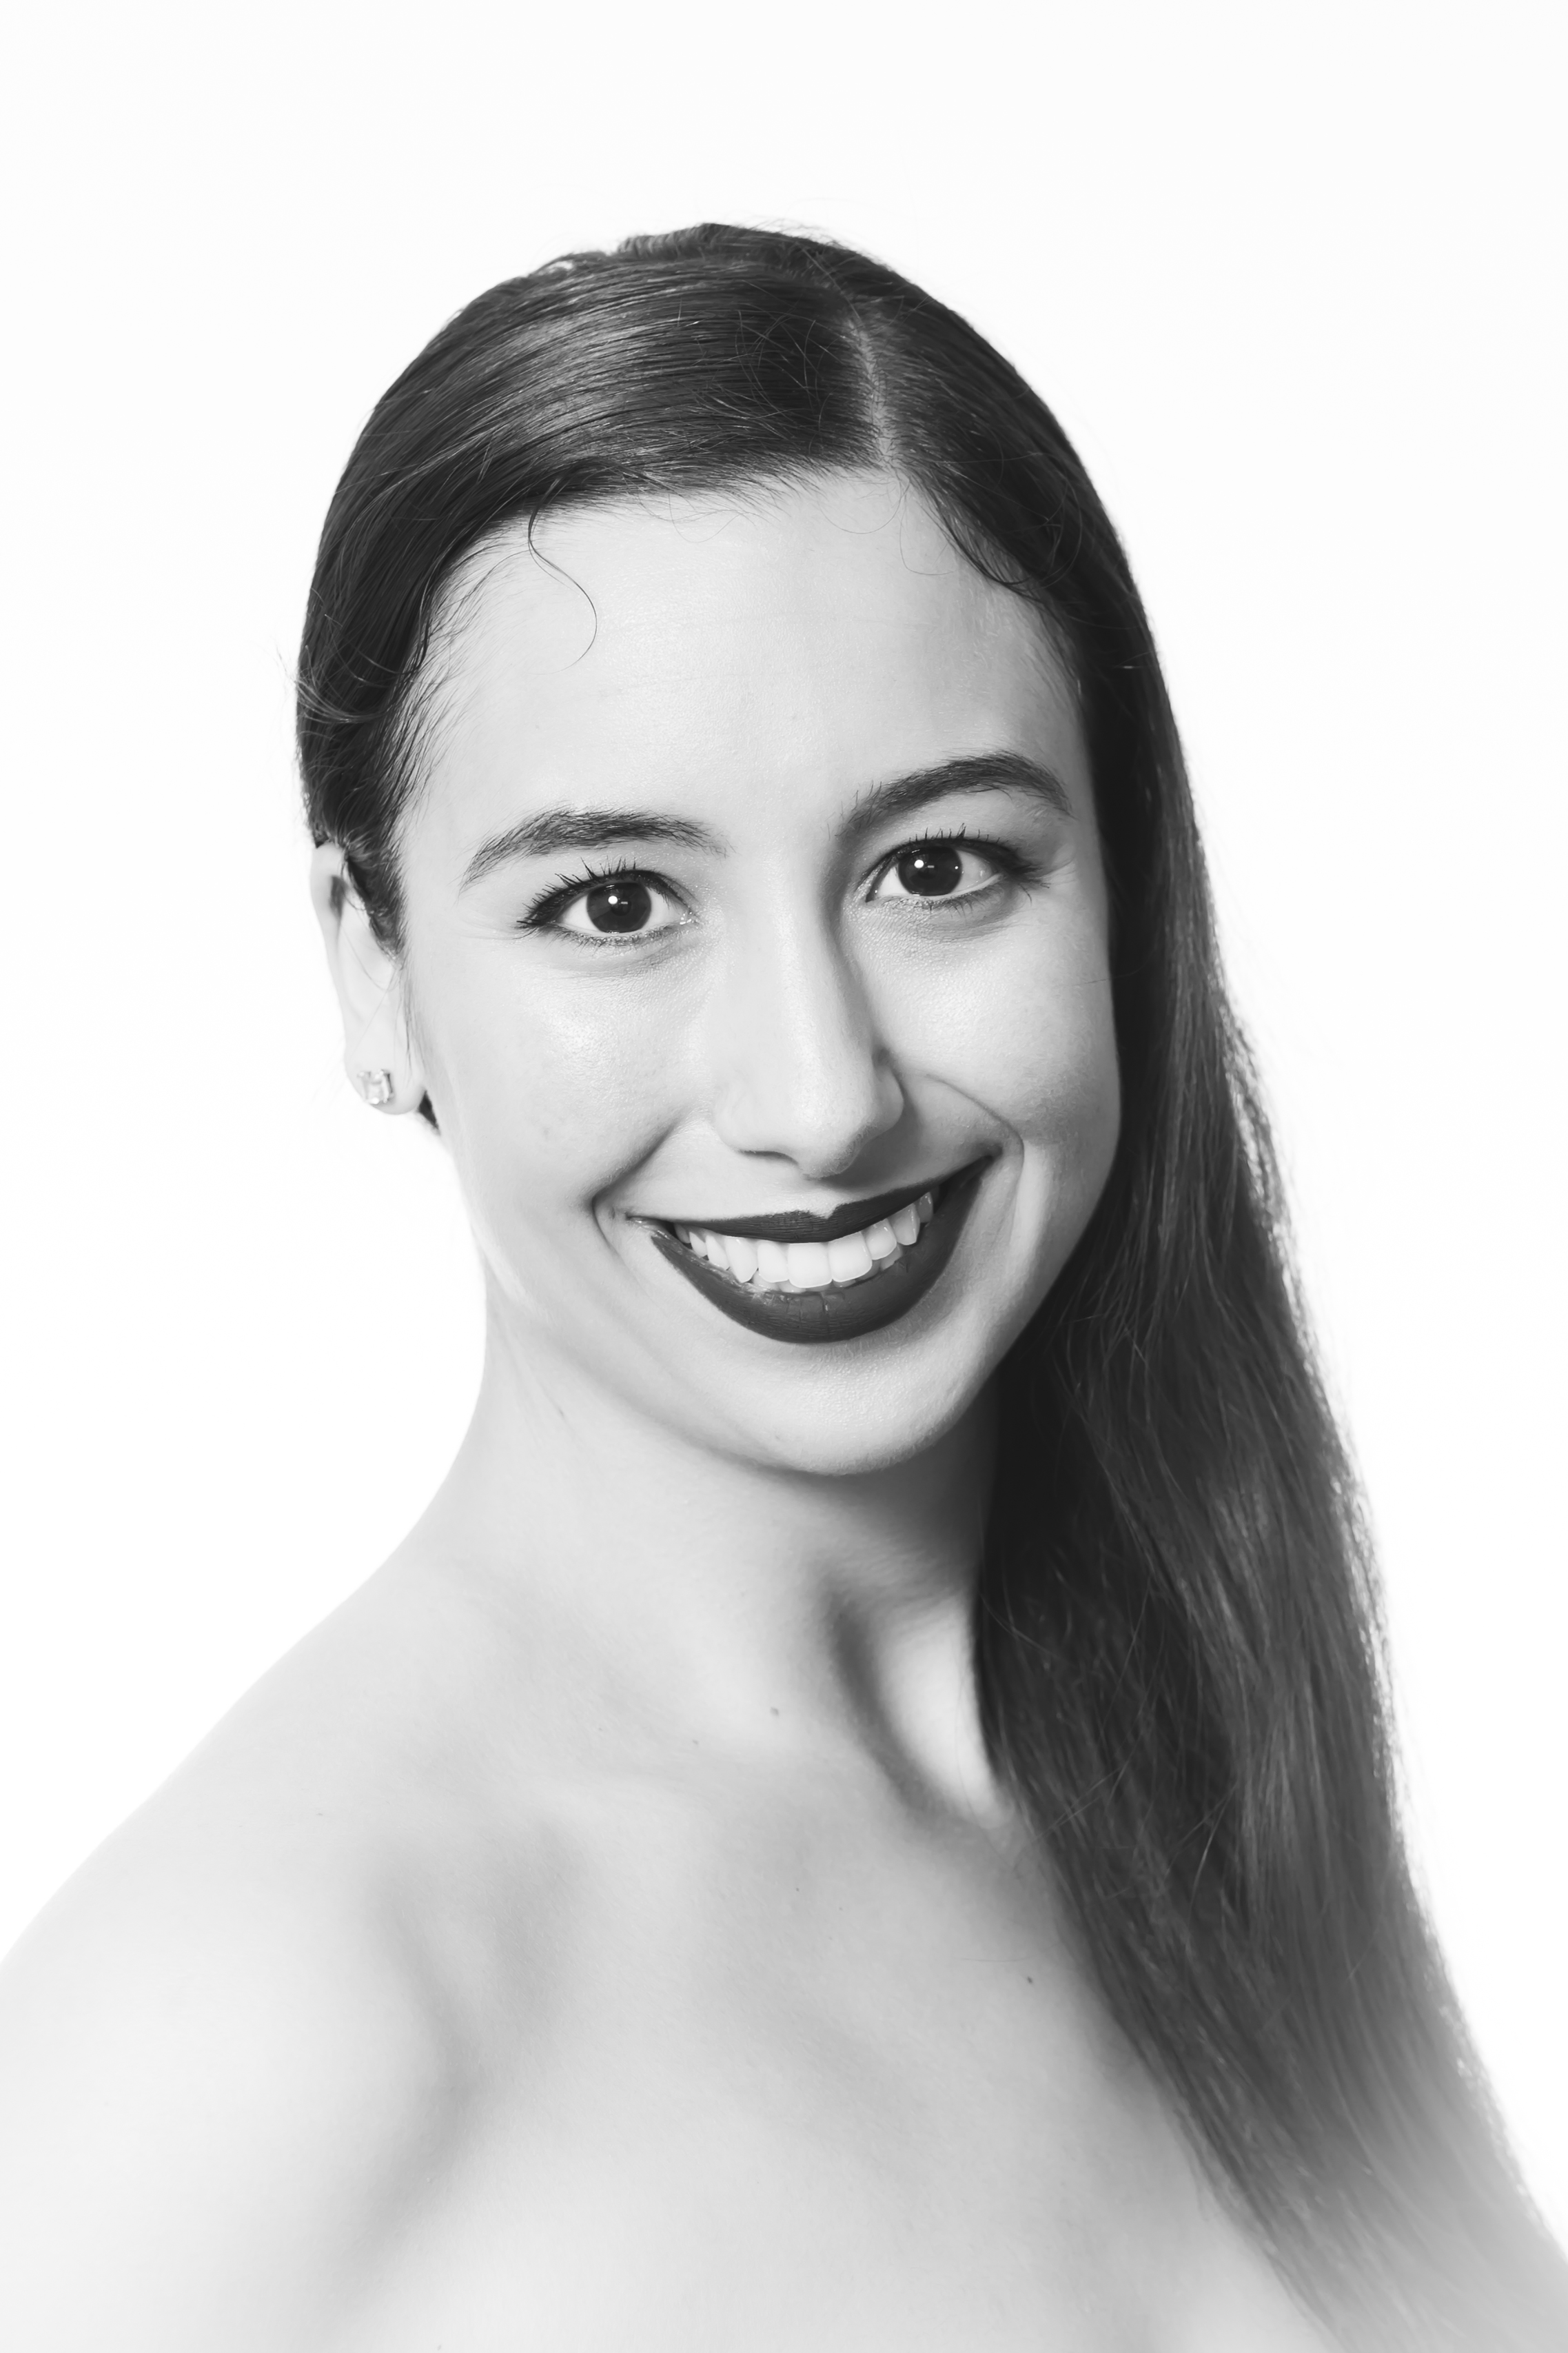 """Alexia Cannizzaro Company Artist   Alexia's love of dancing began at the age of 5, when she began taking ballet lessons at Anita Coutts School of Dance, Ballarat. Following 10 years of classical training in her hometown Ballarat, Alexia was accepted into The Australian Ballet School where she trained from 2011 until 2013.  Late 2013, Alexia moved to Sydney to begin training with Studio Tibor where she joined the pre-professional full time training program for the next 18 months. During this time Alexia was accepted and performed at the Youth America Grand Prix Finals in New York City (2014).  After returning to Melbourne in 2015, Alexia joined Melbourne City Ballet's pre-professional bridging program """"Finishing Year"""" before relocating to Kentucky (USA) to join Louisville Ballet for a two year scholarship with the company as part of their Trainee Program.  Alexia returned home to Melbourne City Ballet in 2017, commencing in the role of Junior Artist with the company during our national tour of A Midsummer Night's Dream 2017."""